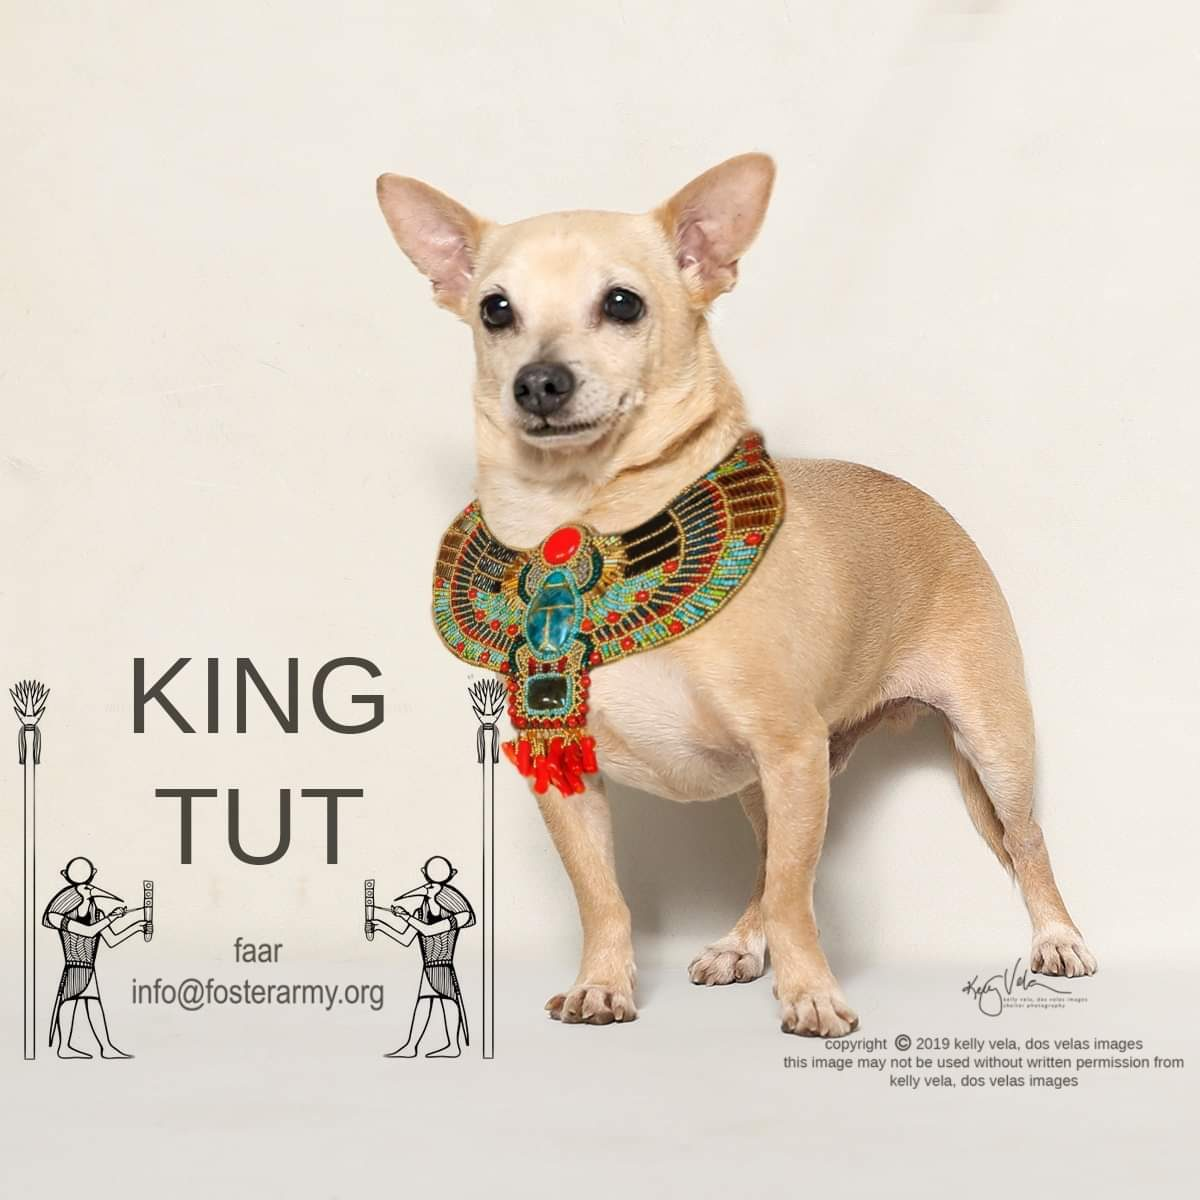 Adopt King Tut the King of Chihuahuas with Foster Army Animal Rescue in Riverside, CA